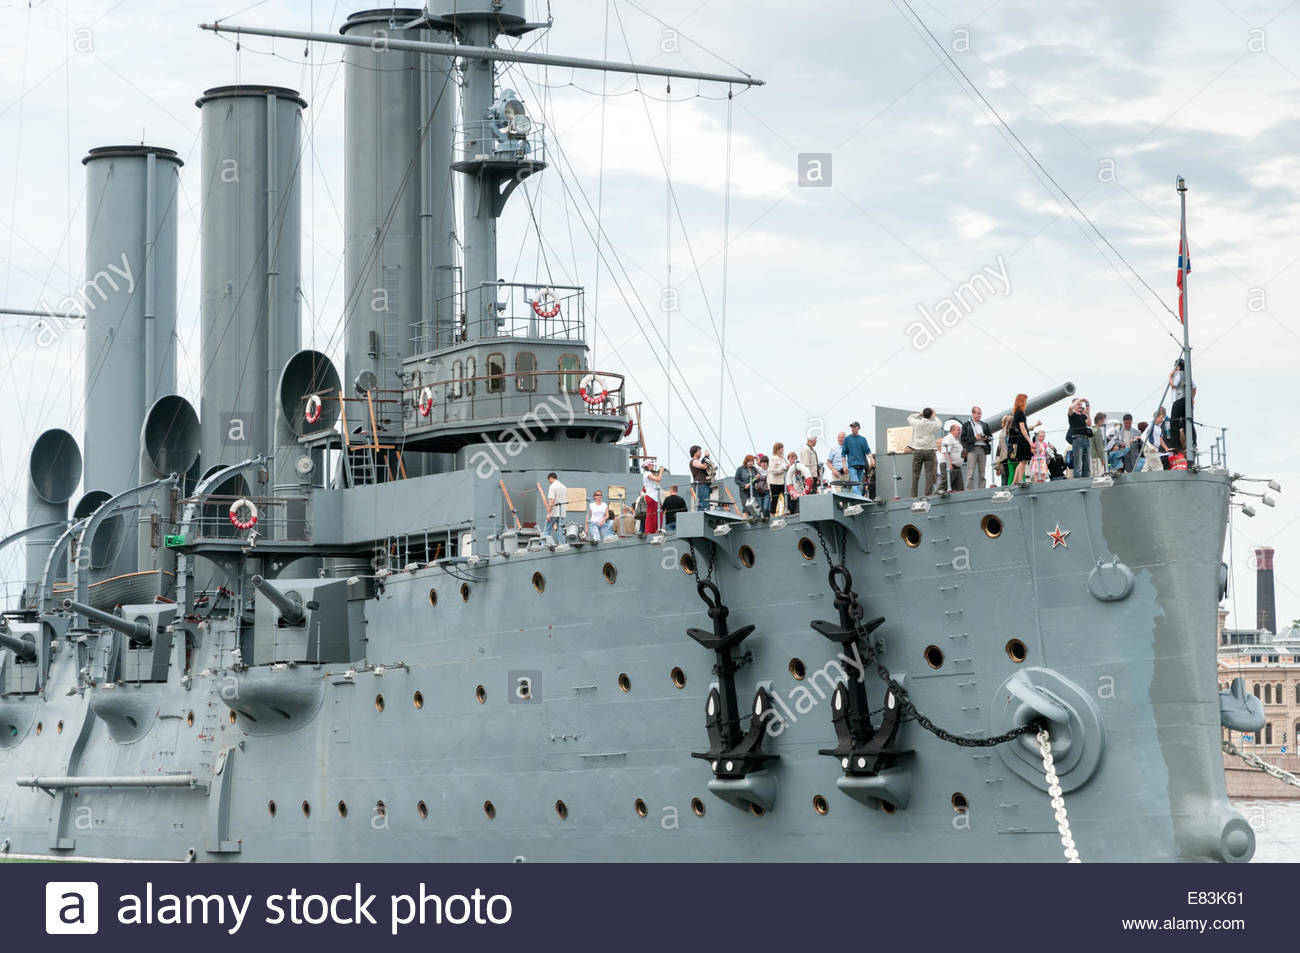 The Cruiser Aurora, St Petersburg, Russia - Stock Image